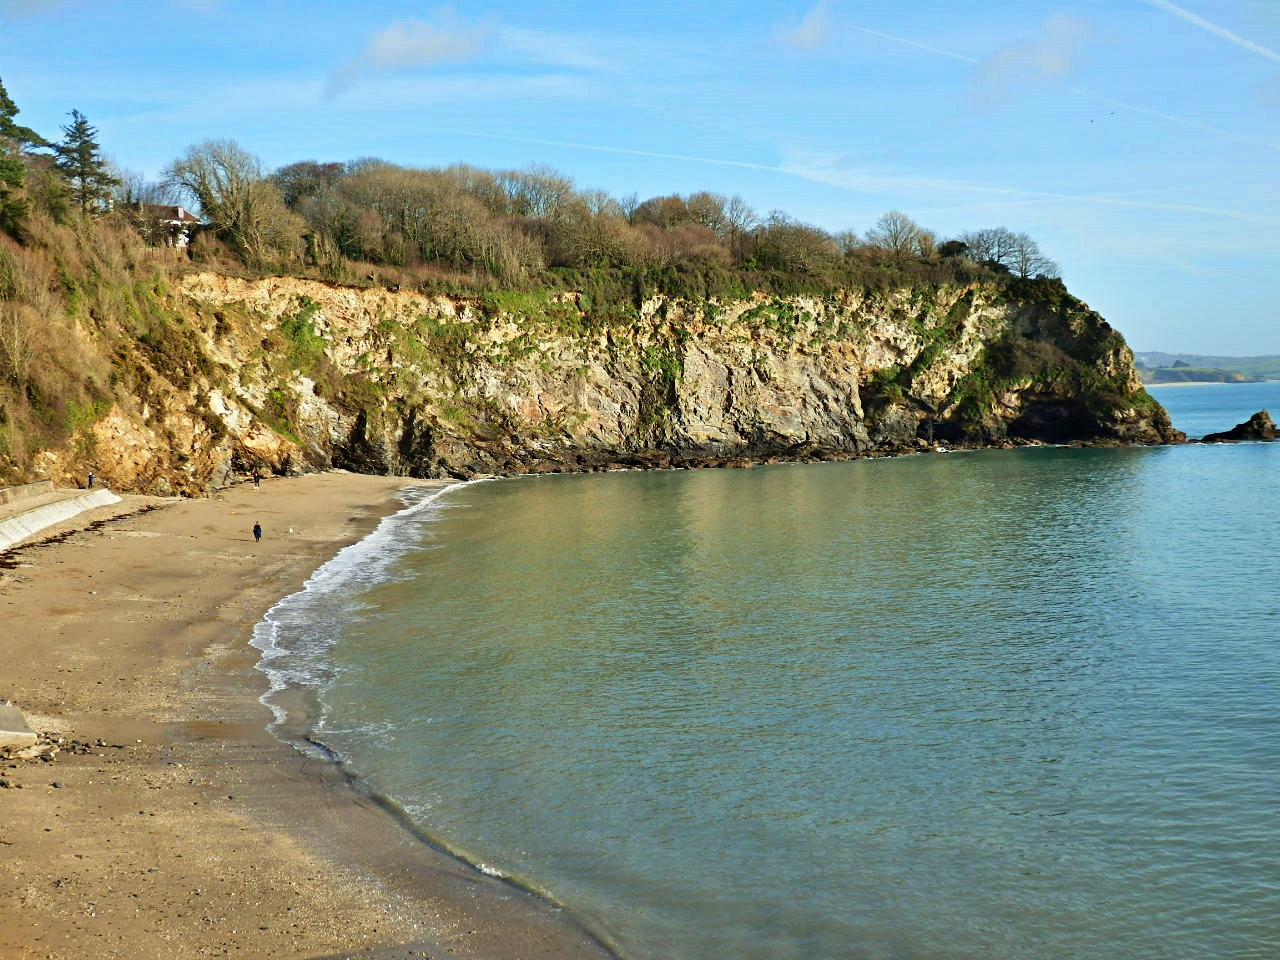 Mike's Cornwall: Walking From Porthpean Beach to Duporth ...